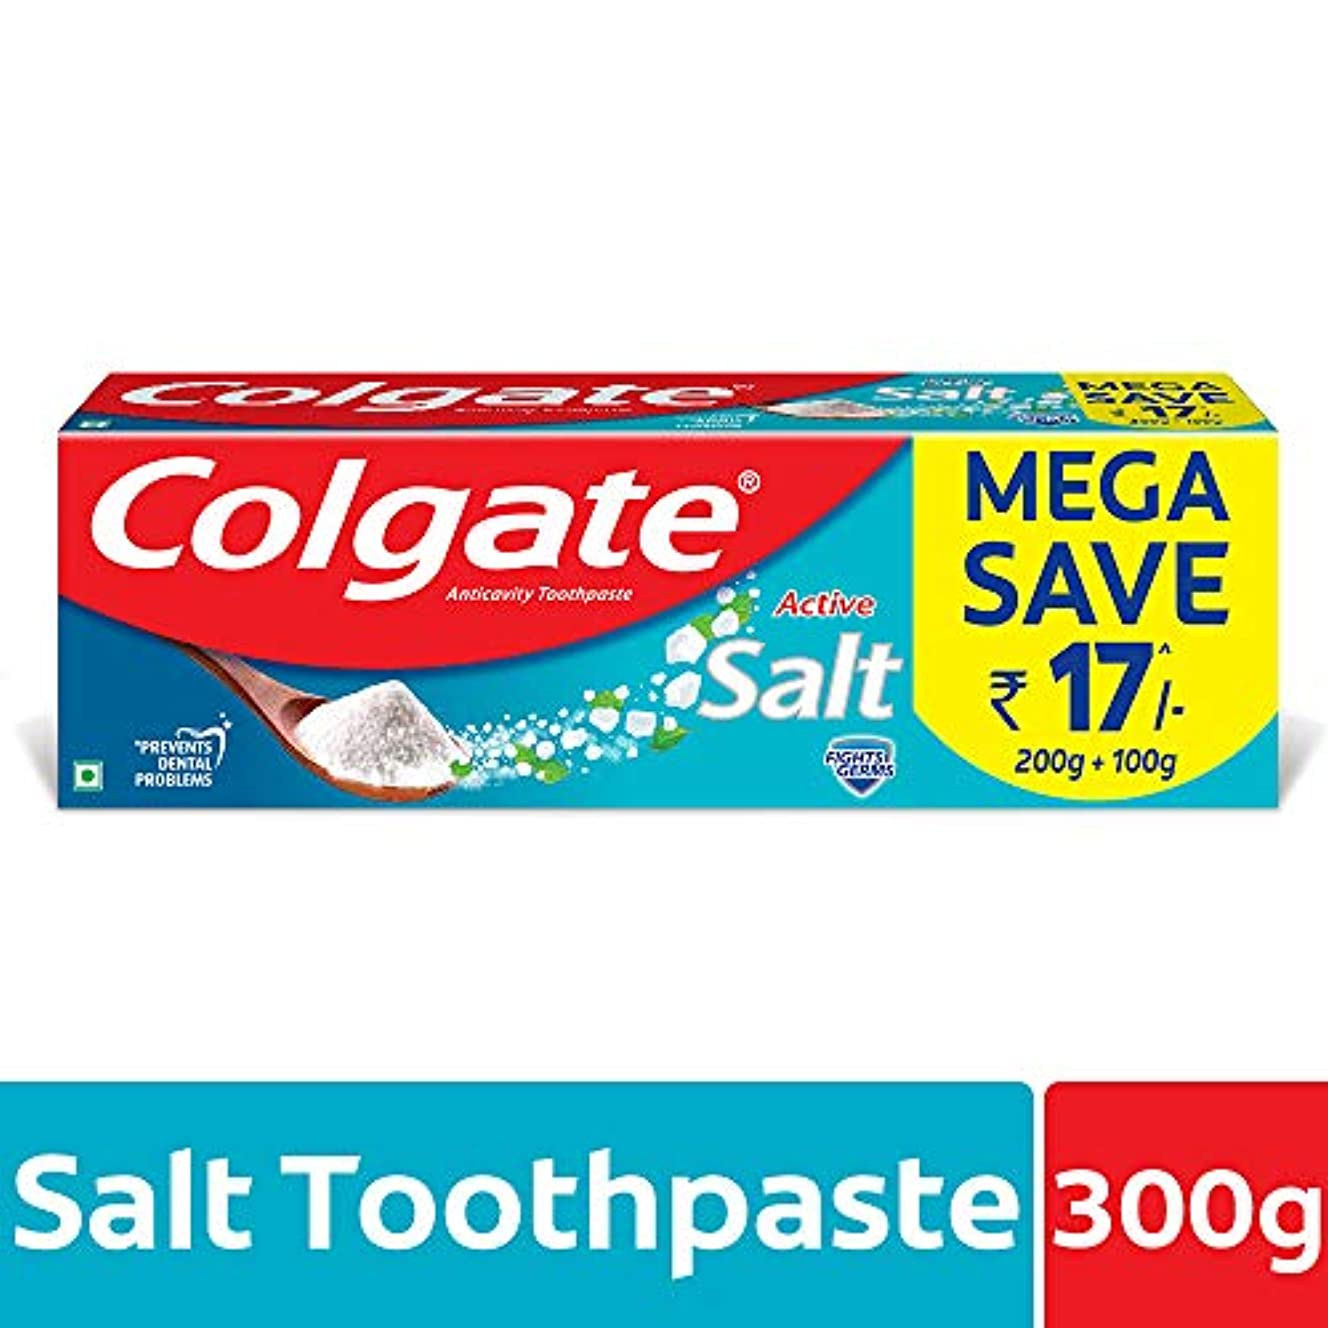 疑い者不利助けになるColgate Active Salt Toothpaste, 300gm(200gm + 100gm)